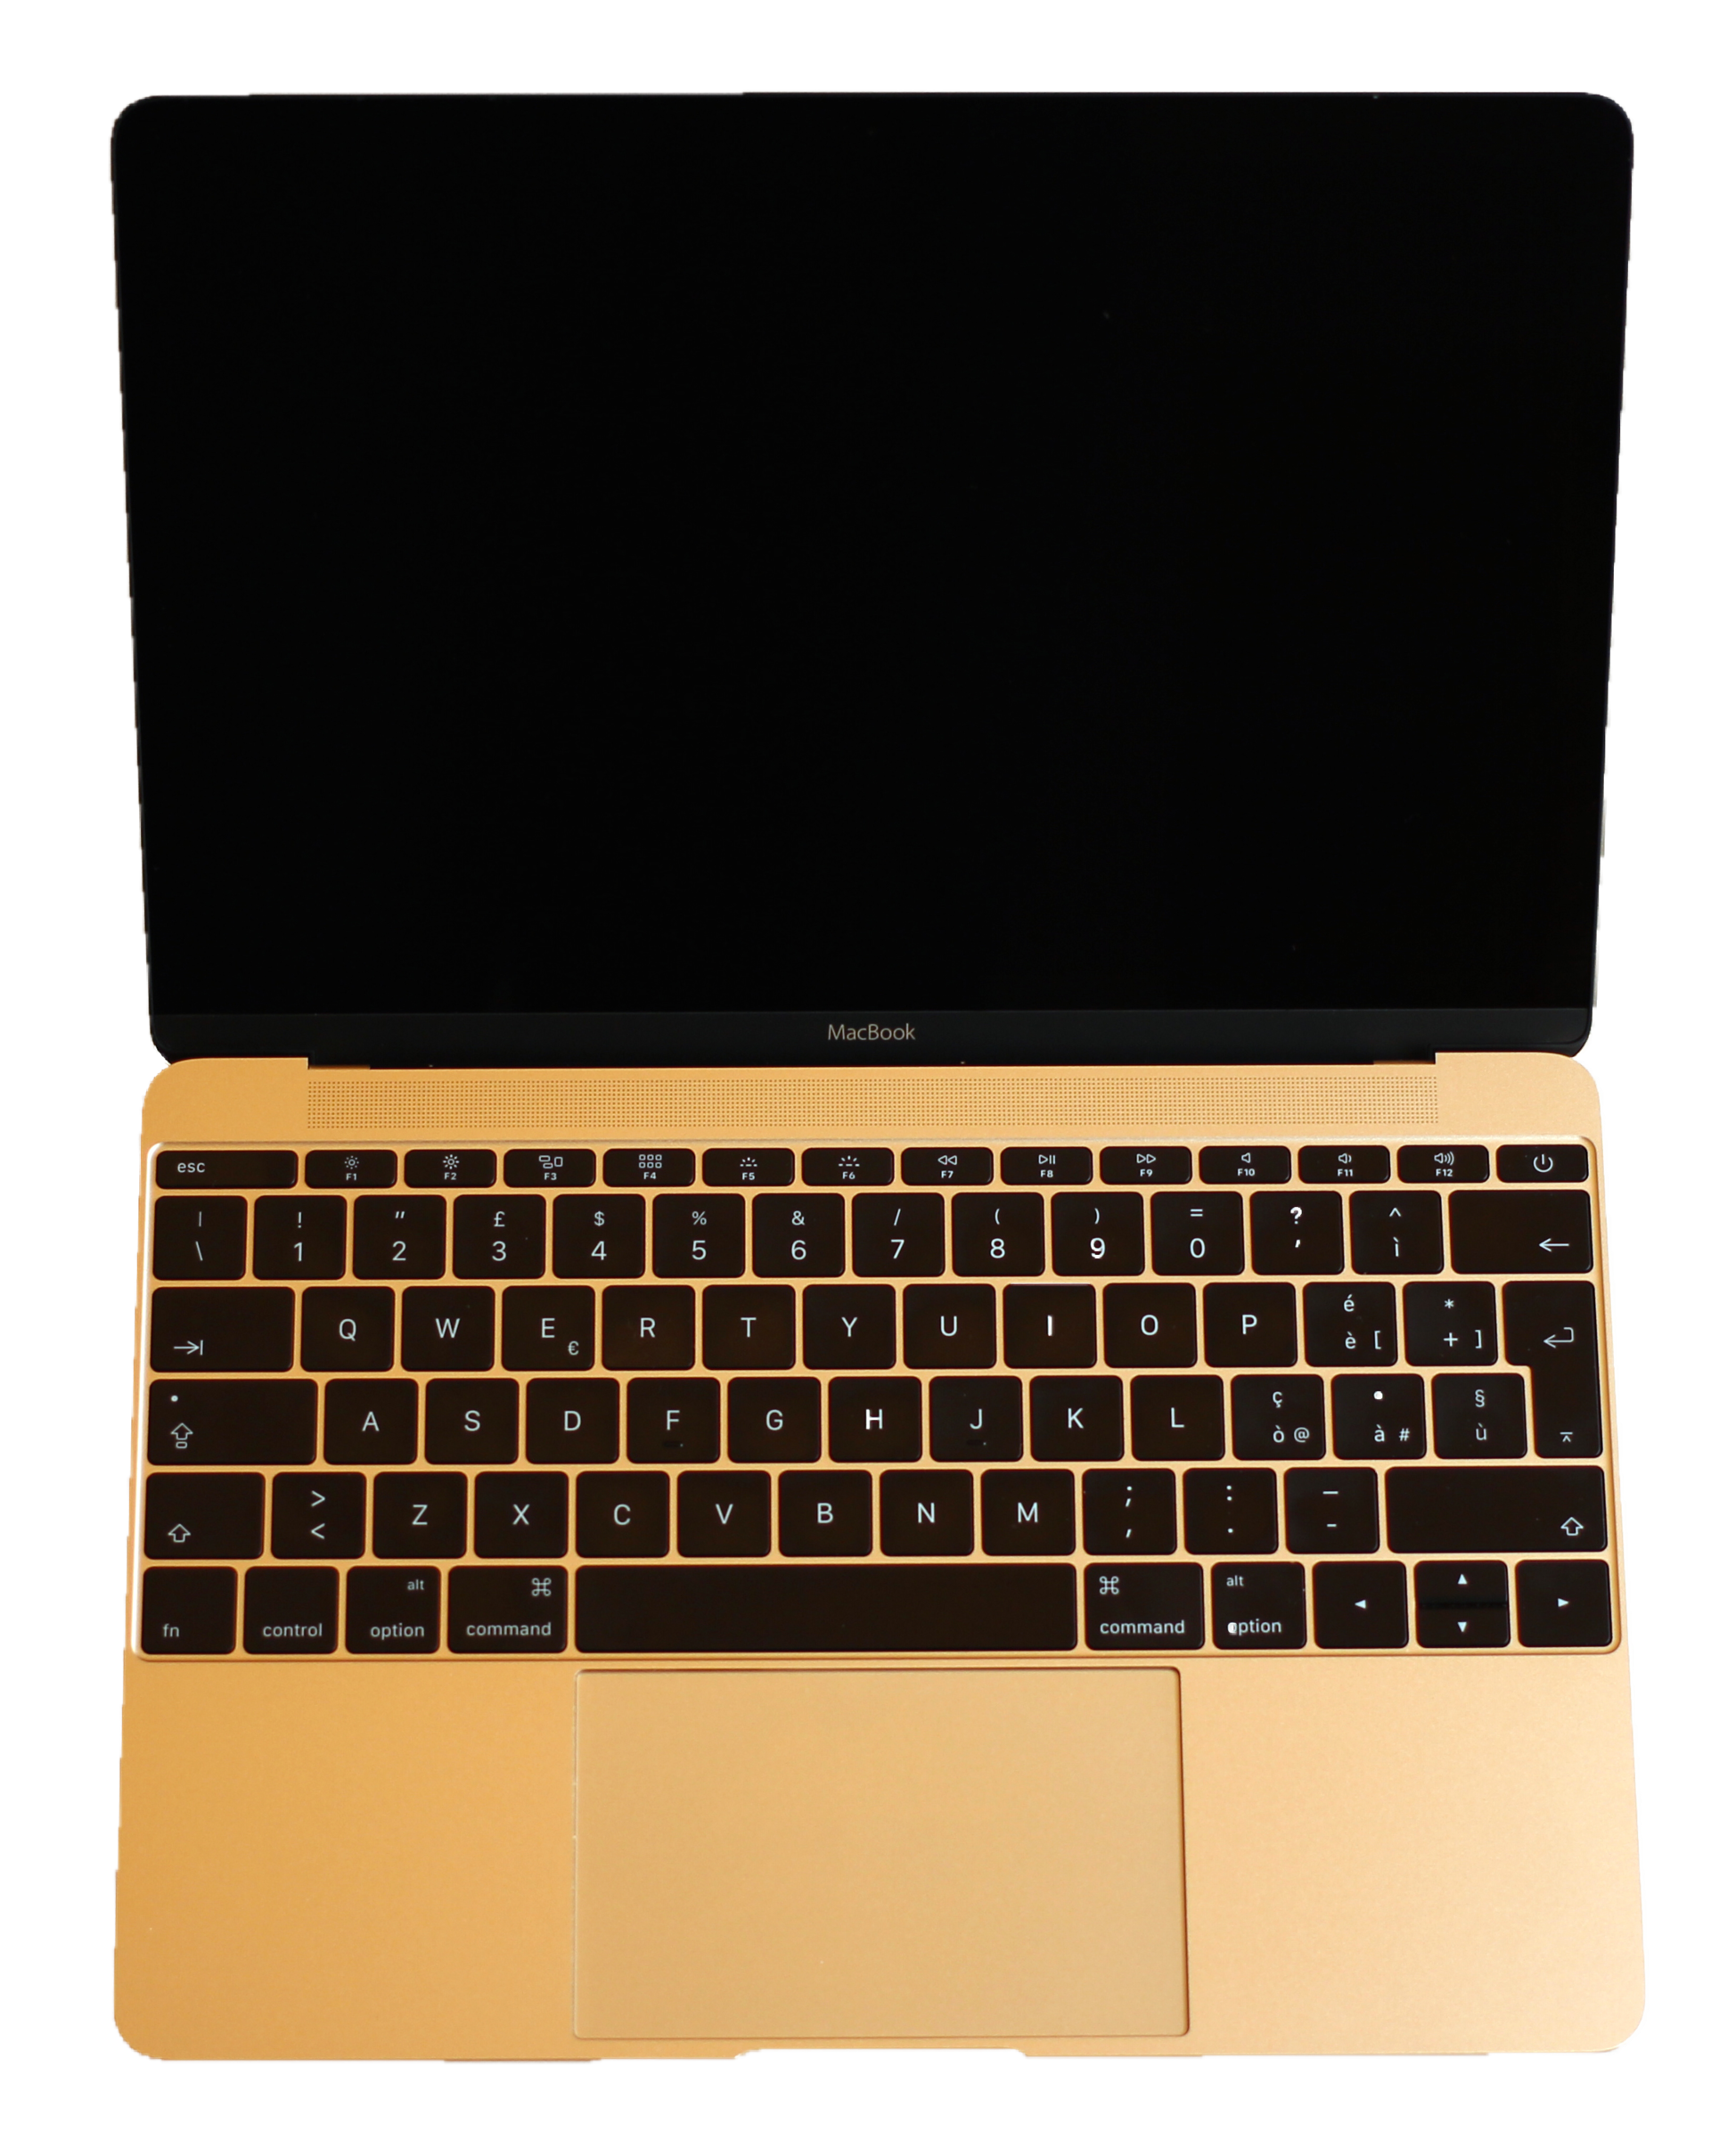 MacBook (Retina) - Wikipedia